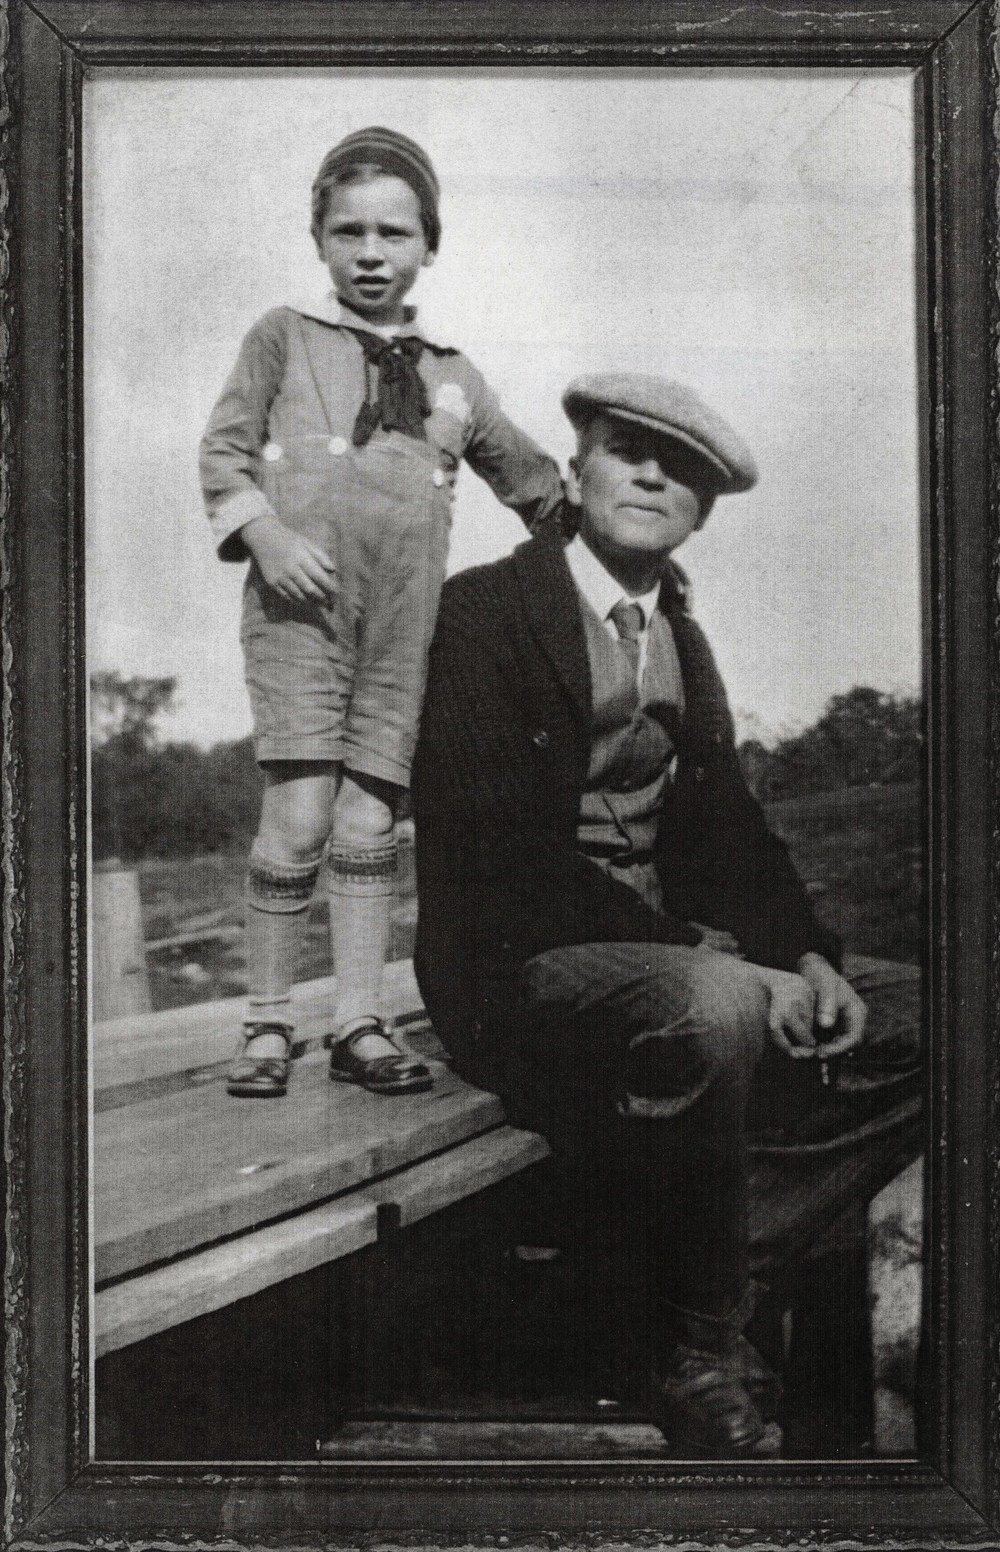 Jim Marett & father F.N. Marett 1929